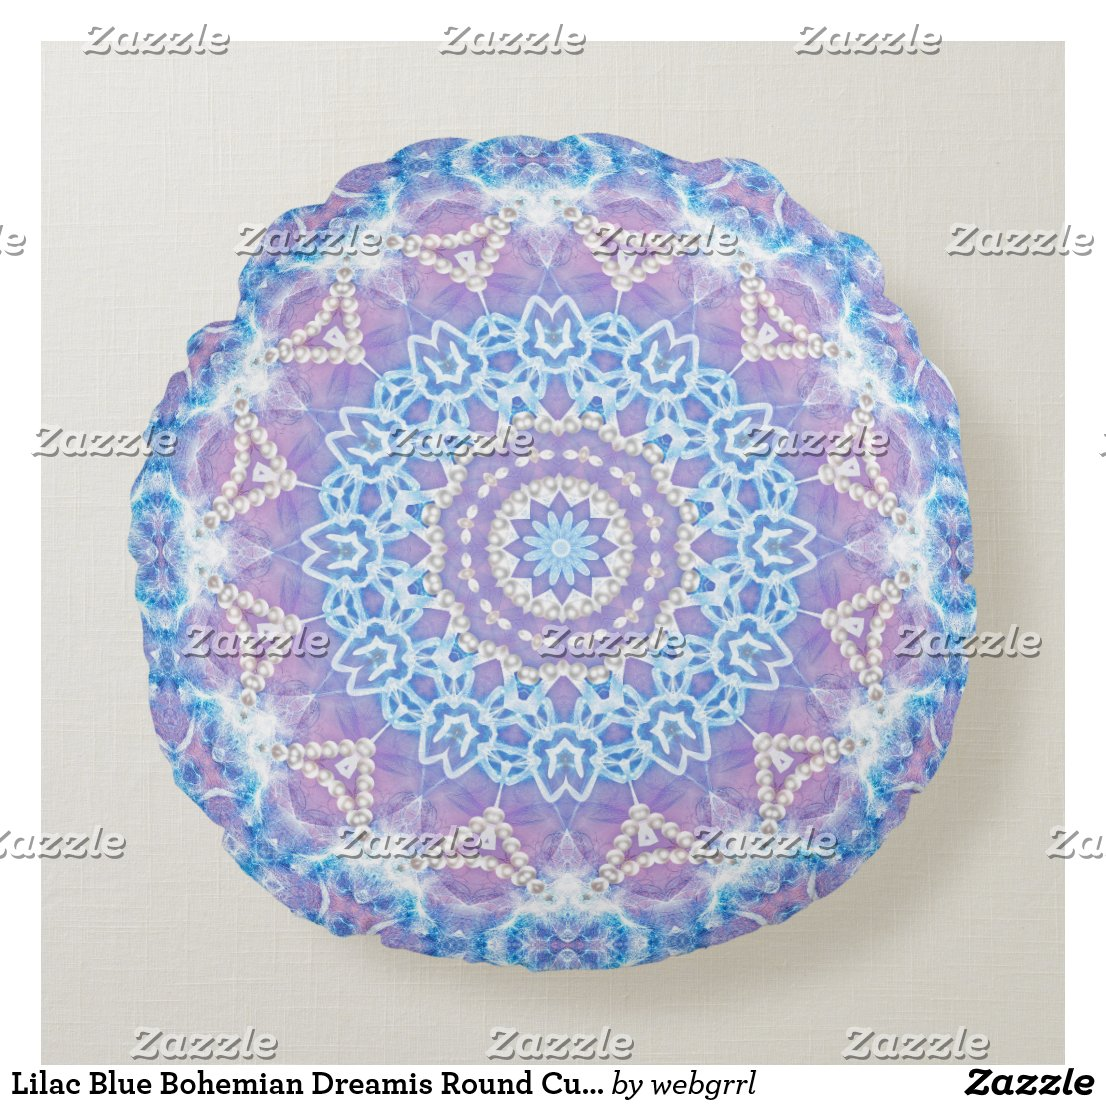 Lilac Blue Bohemian Dreamis Round Cushion